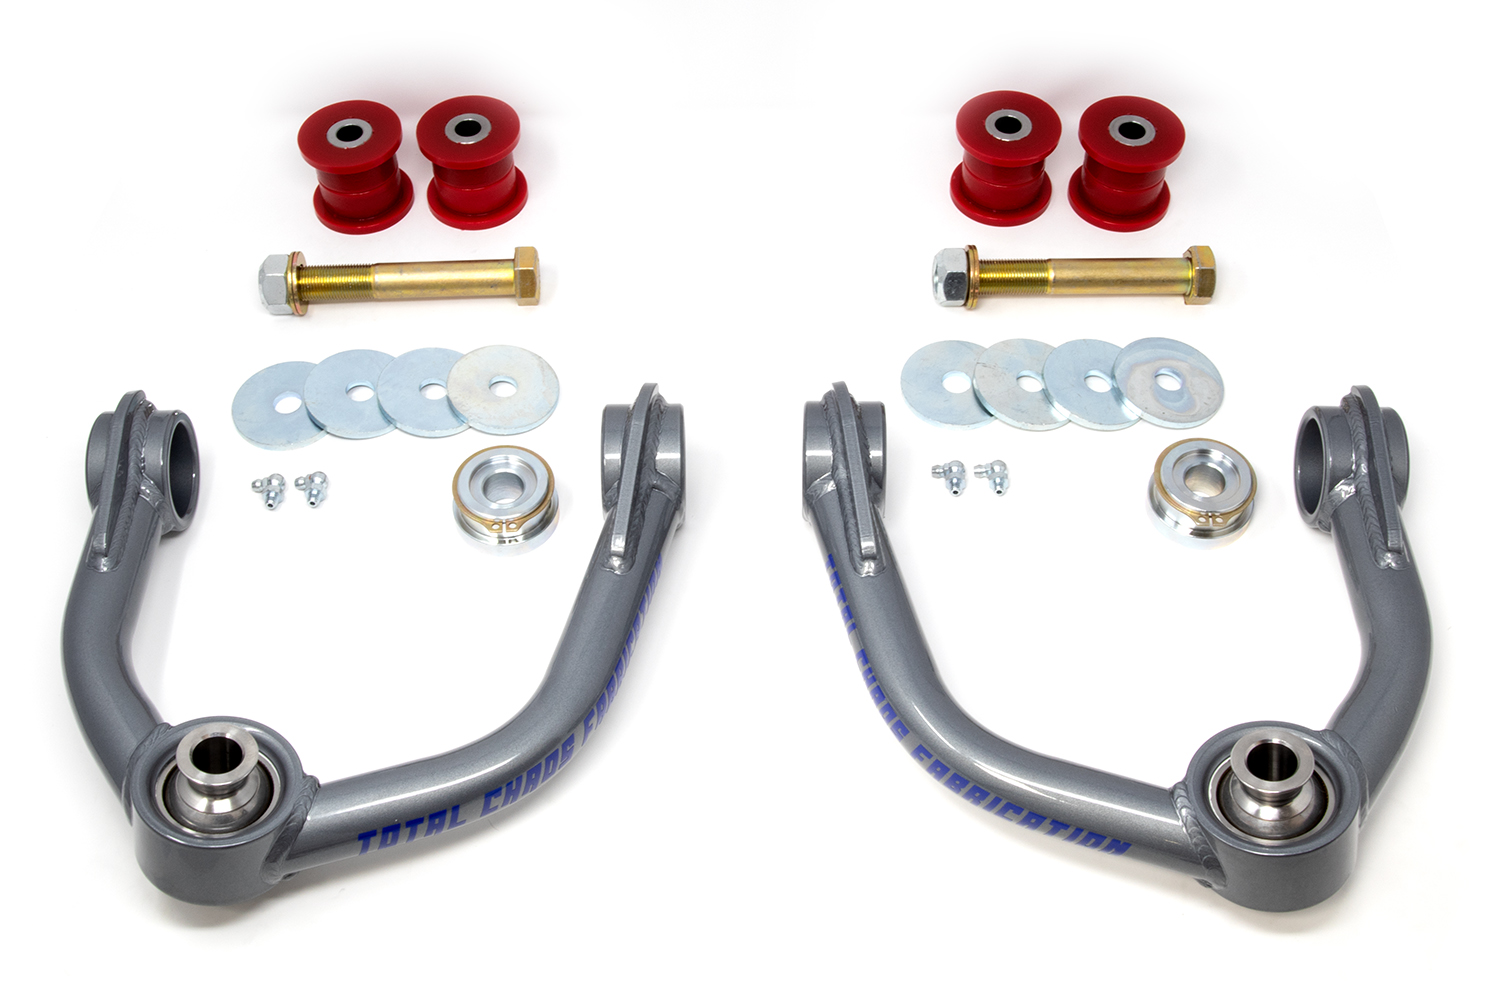 Total Chaos Upper Control Arms for 1996-2002 4Runner - Urethane Bushings